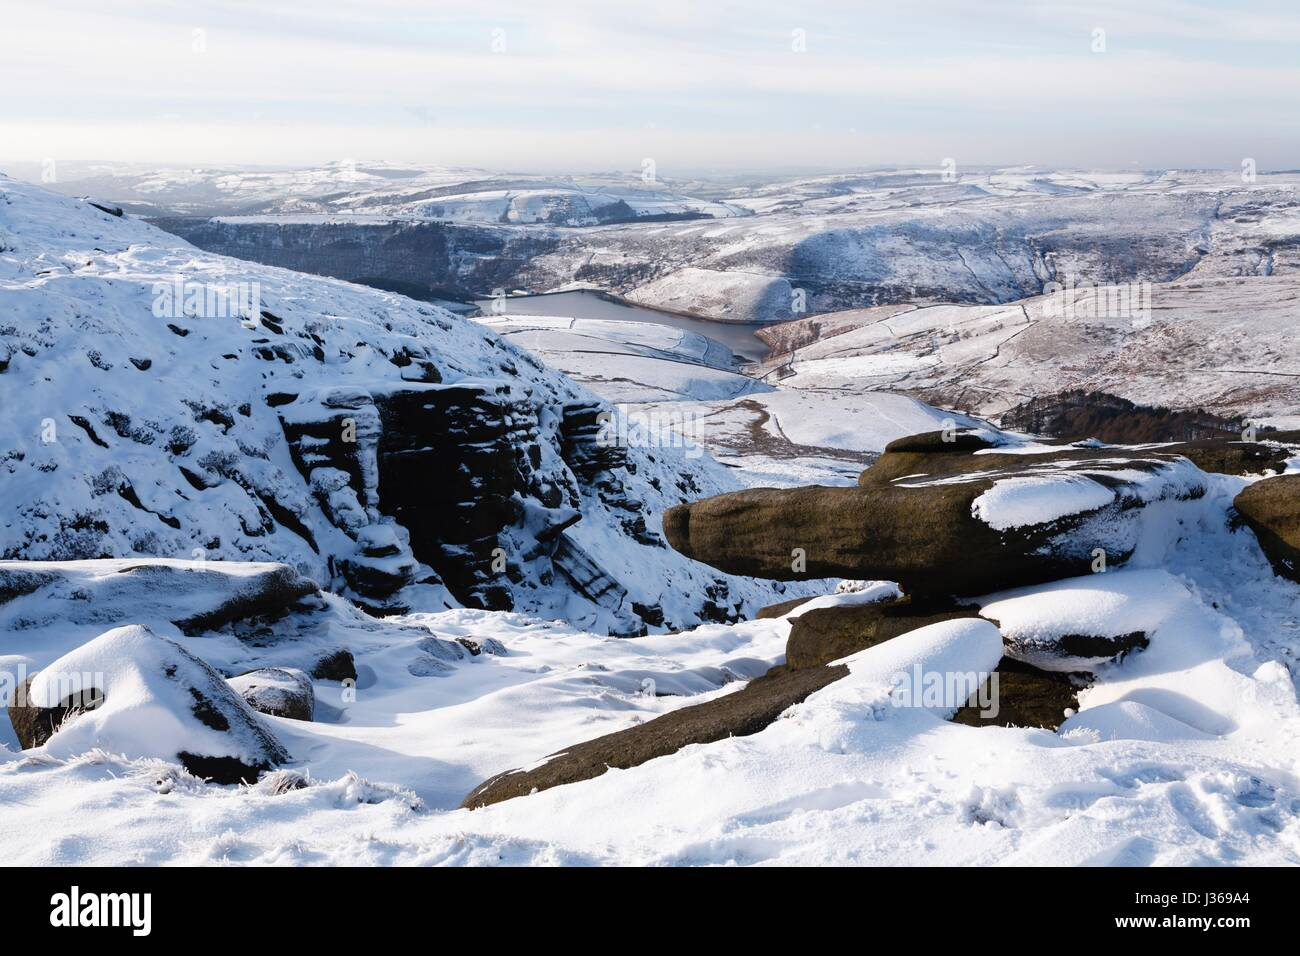 Kinder Reservoir viewed from Kinder Scout, Peak District, UK - Stock Image